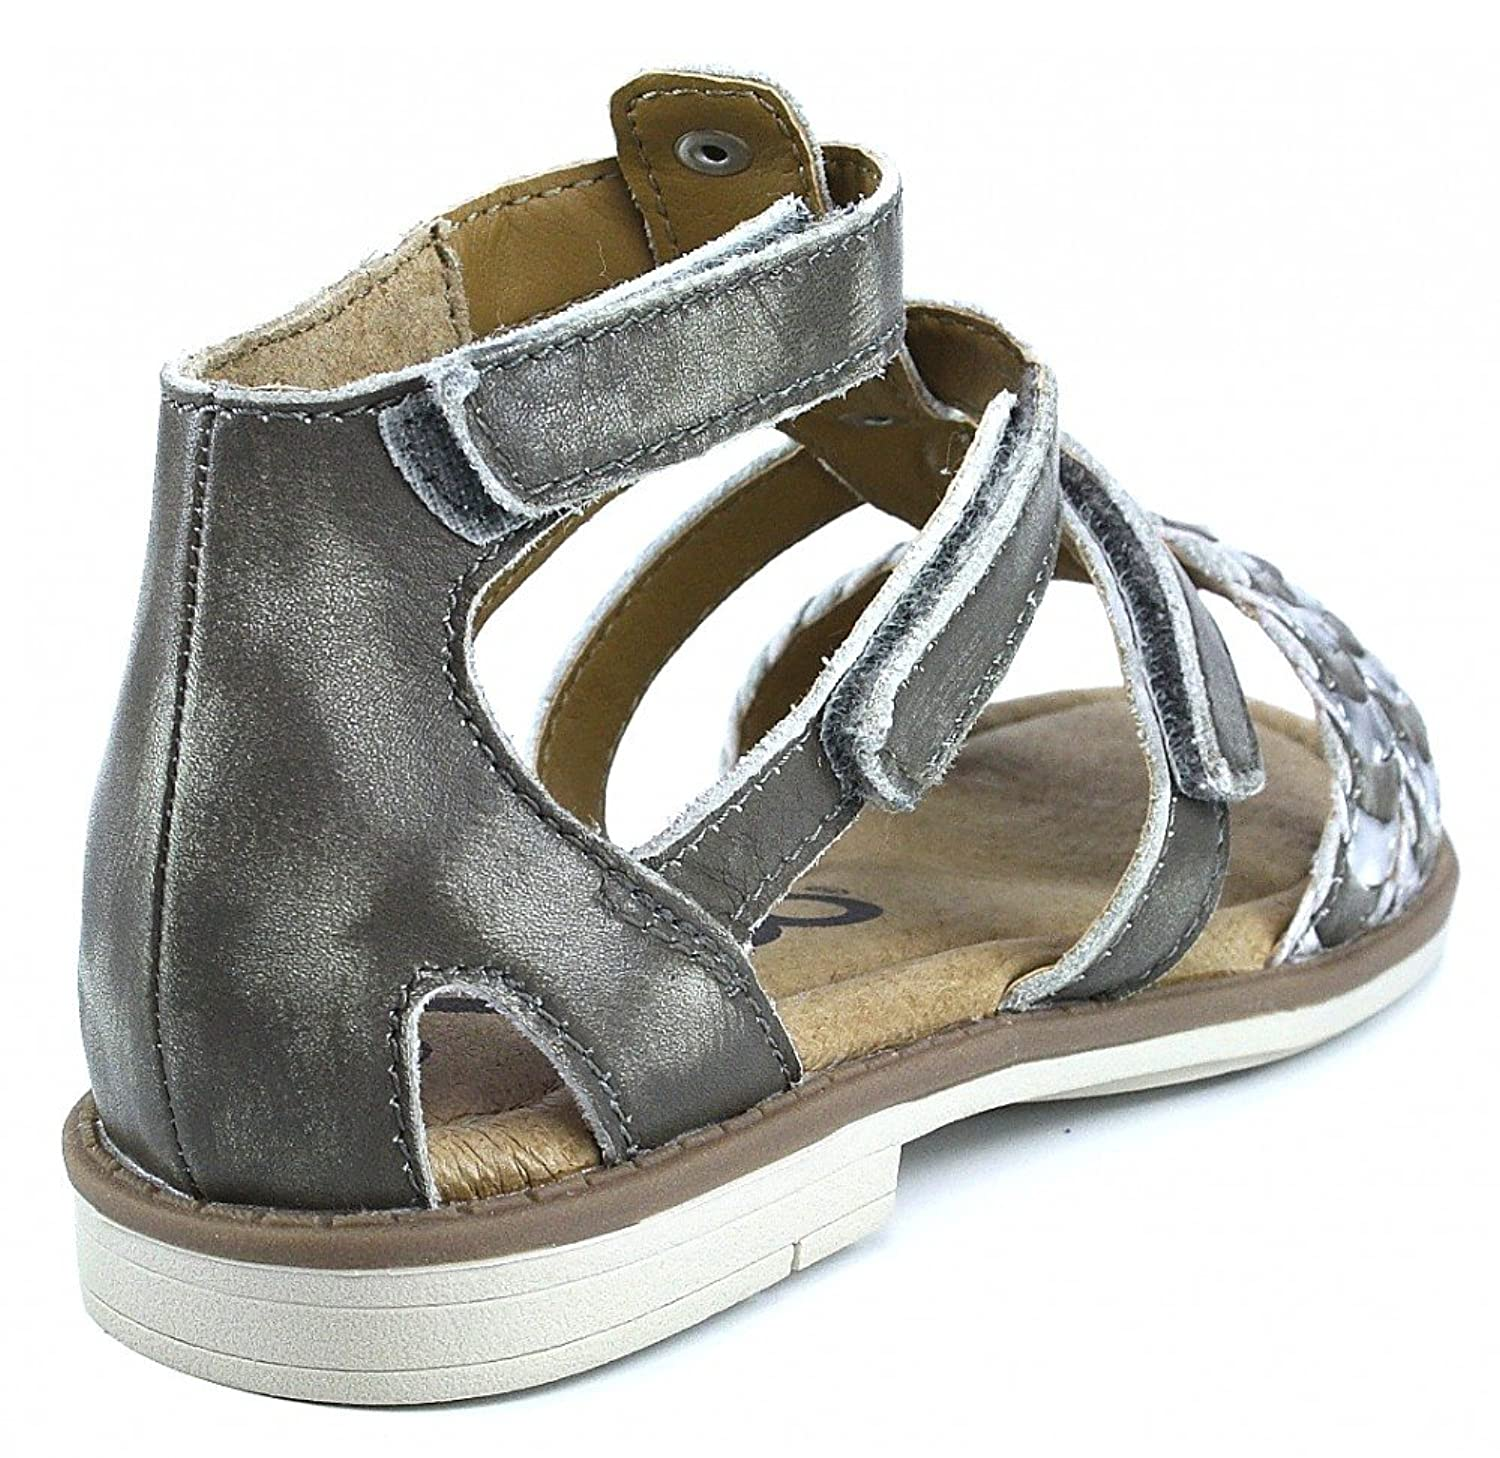 Vado Cleo sandal mud Brown / Velcro straps Brown Size: 2: Amazon.co.uk:  Shoes & Bags